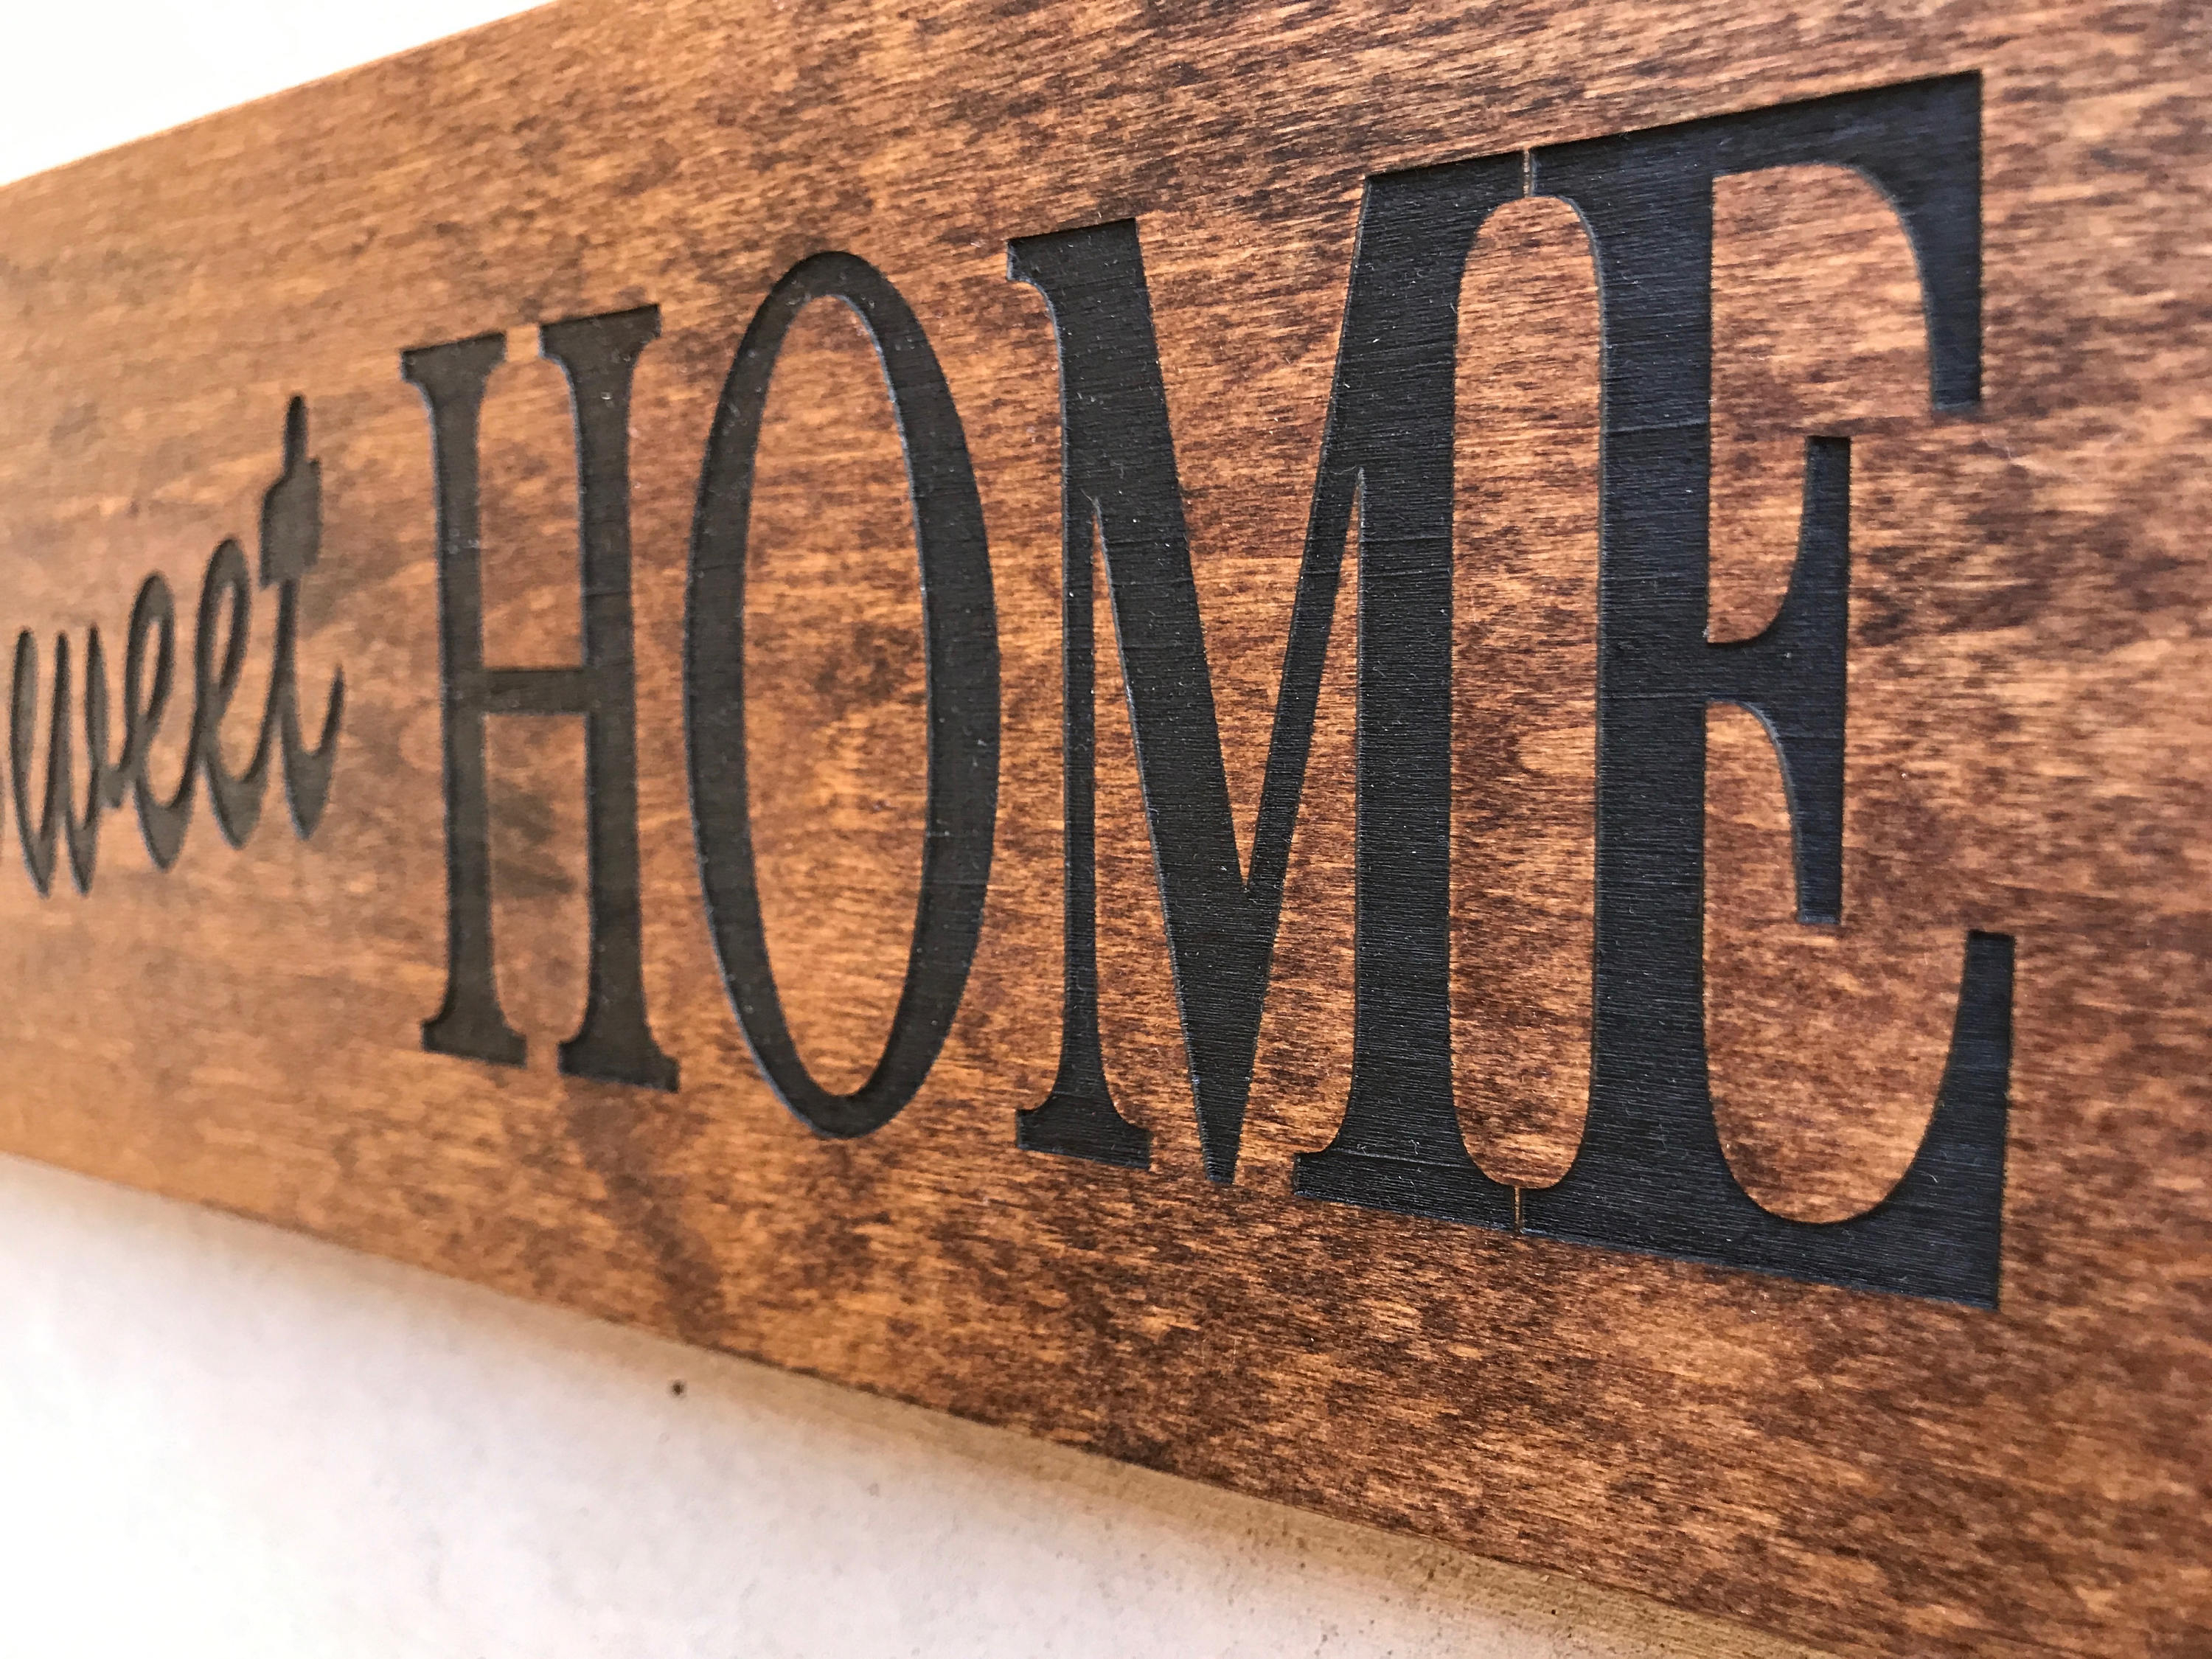 Engraved Wood Home Sign / Inspirational Sign / Custom Wall Decor With Best And Newest Laser Engraved Home Sweet Home Wall Decor (Gallery 18 of 20)